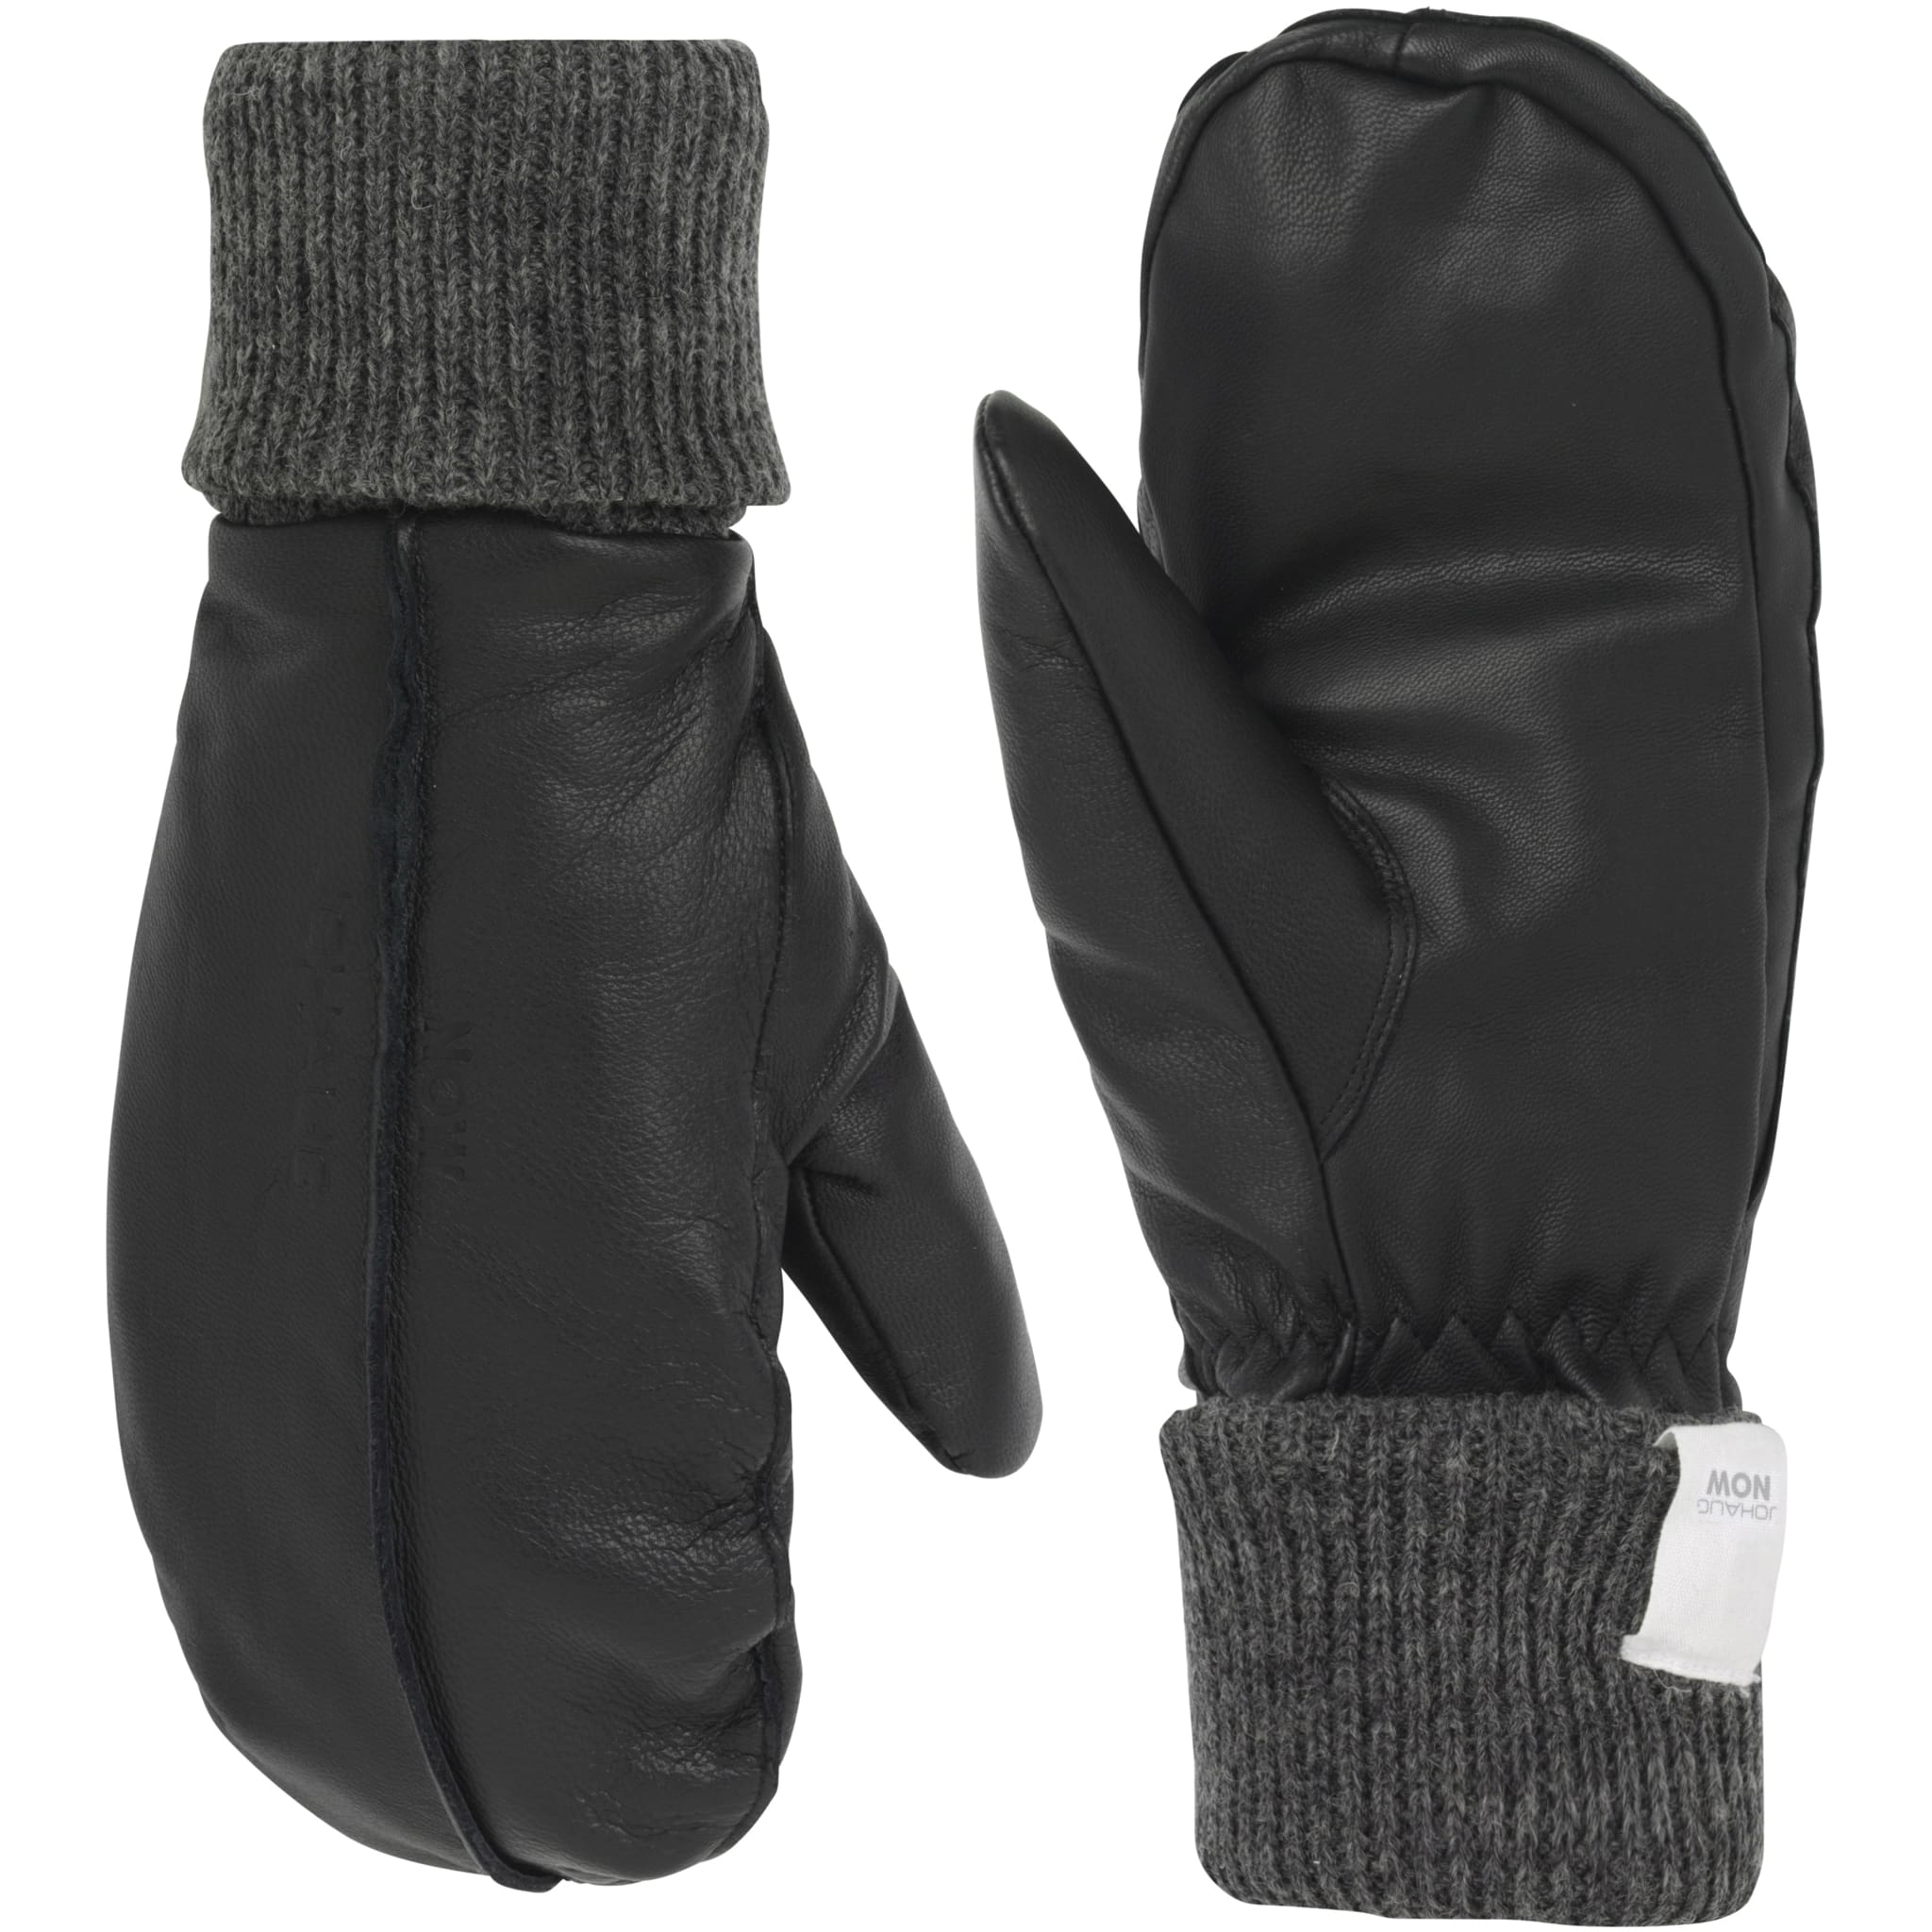 NOW Leather Mitten